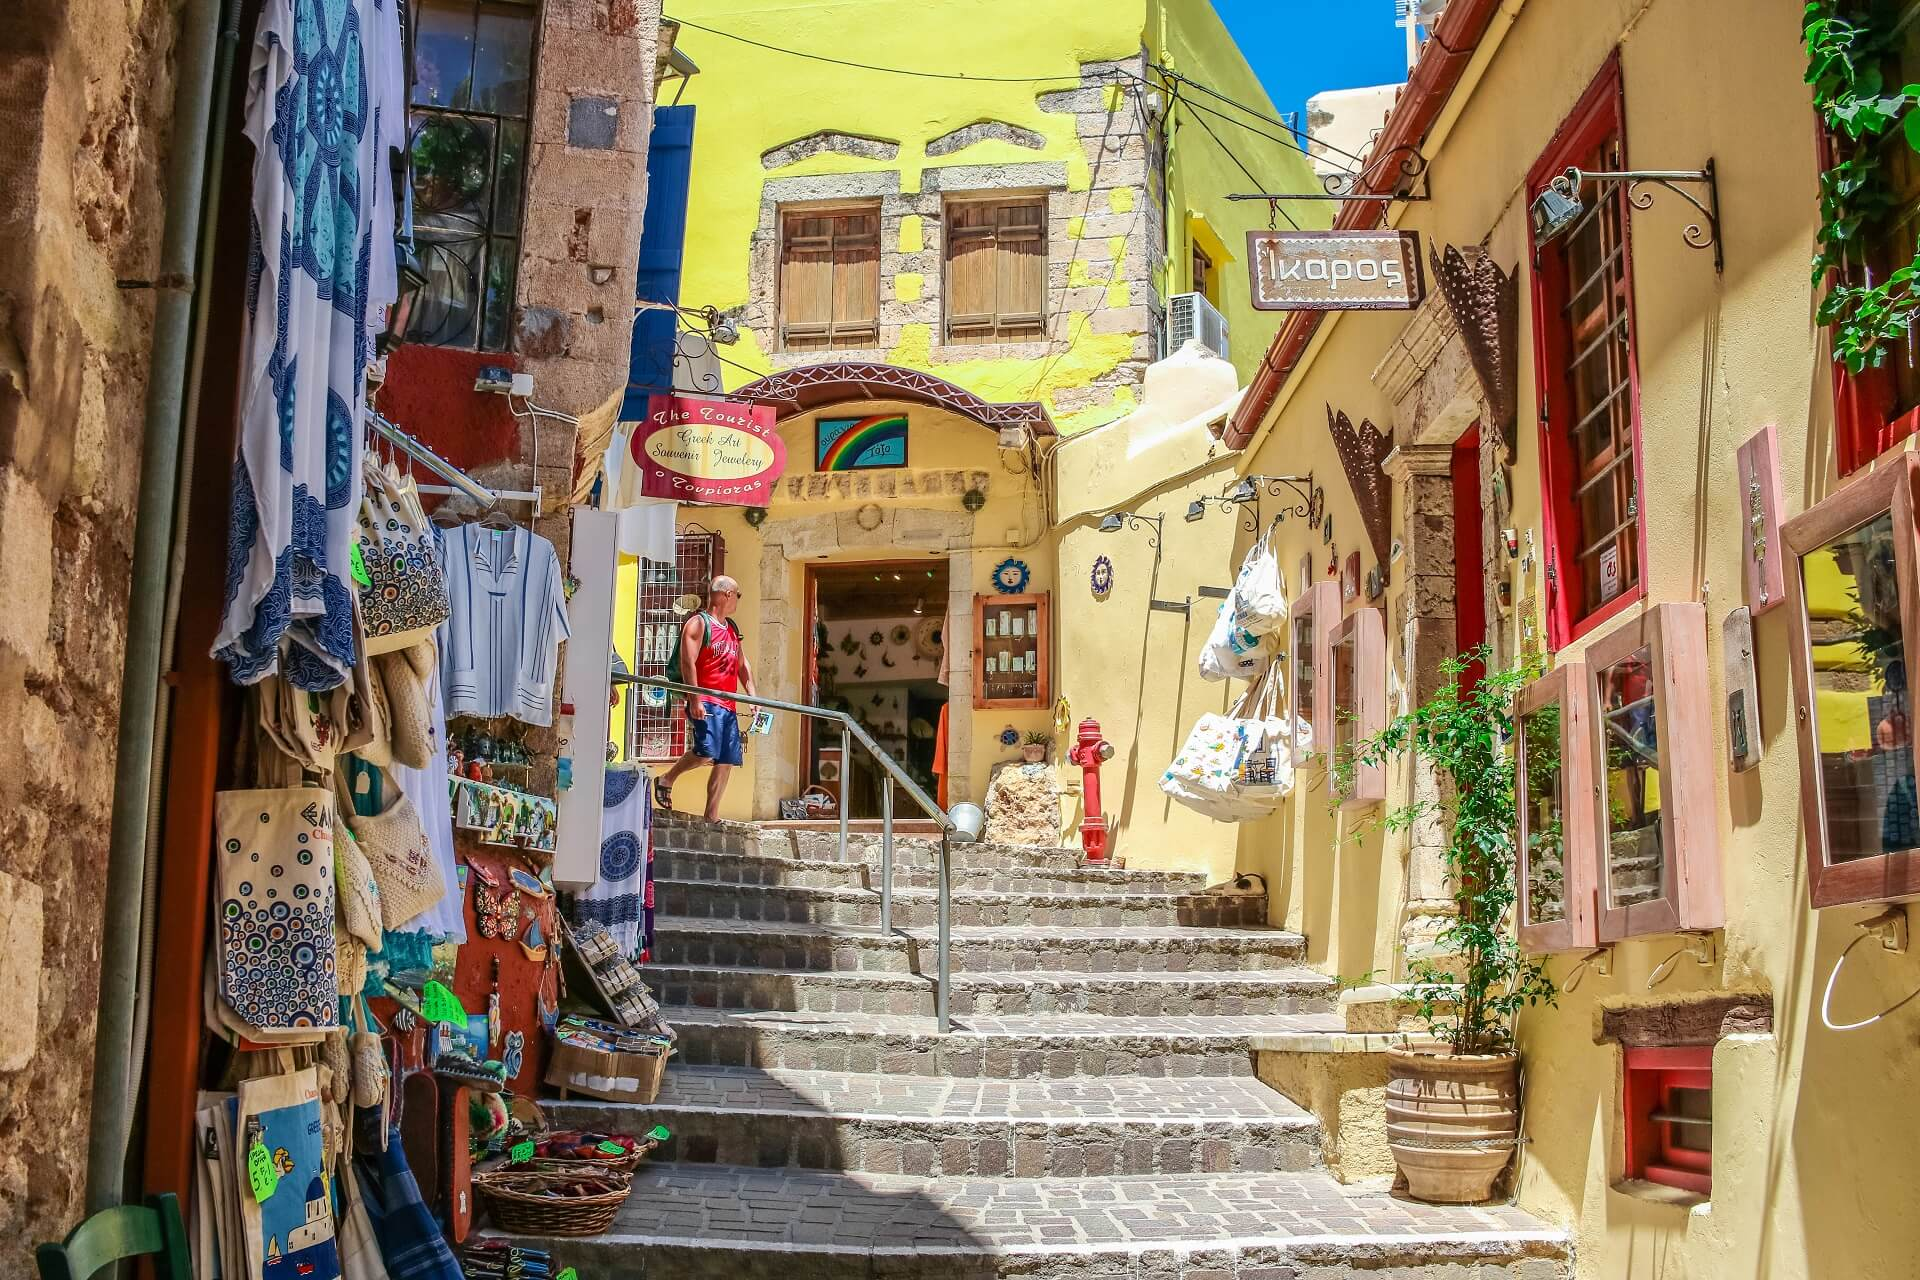 Chania Old Venetian Town Crete - allincrete.com